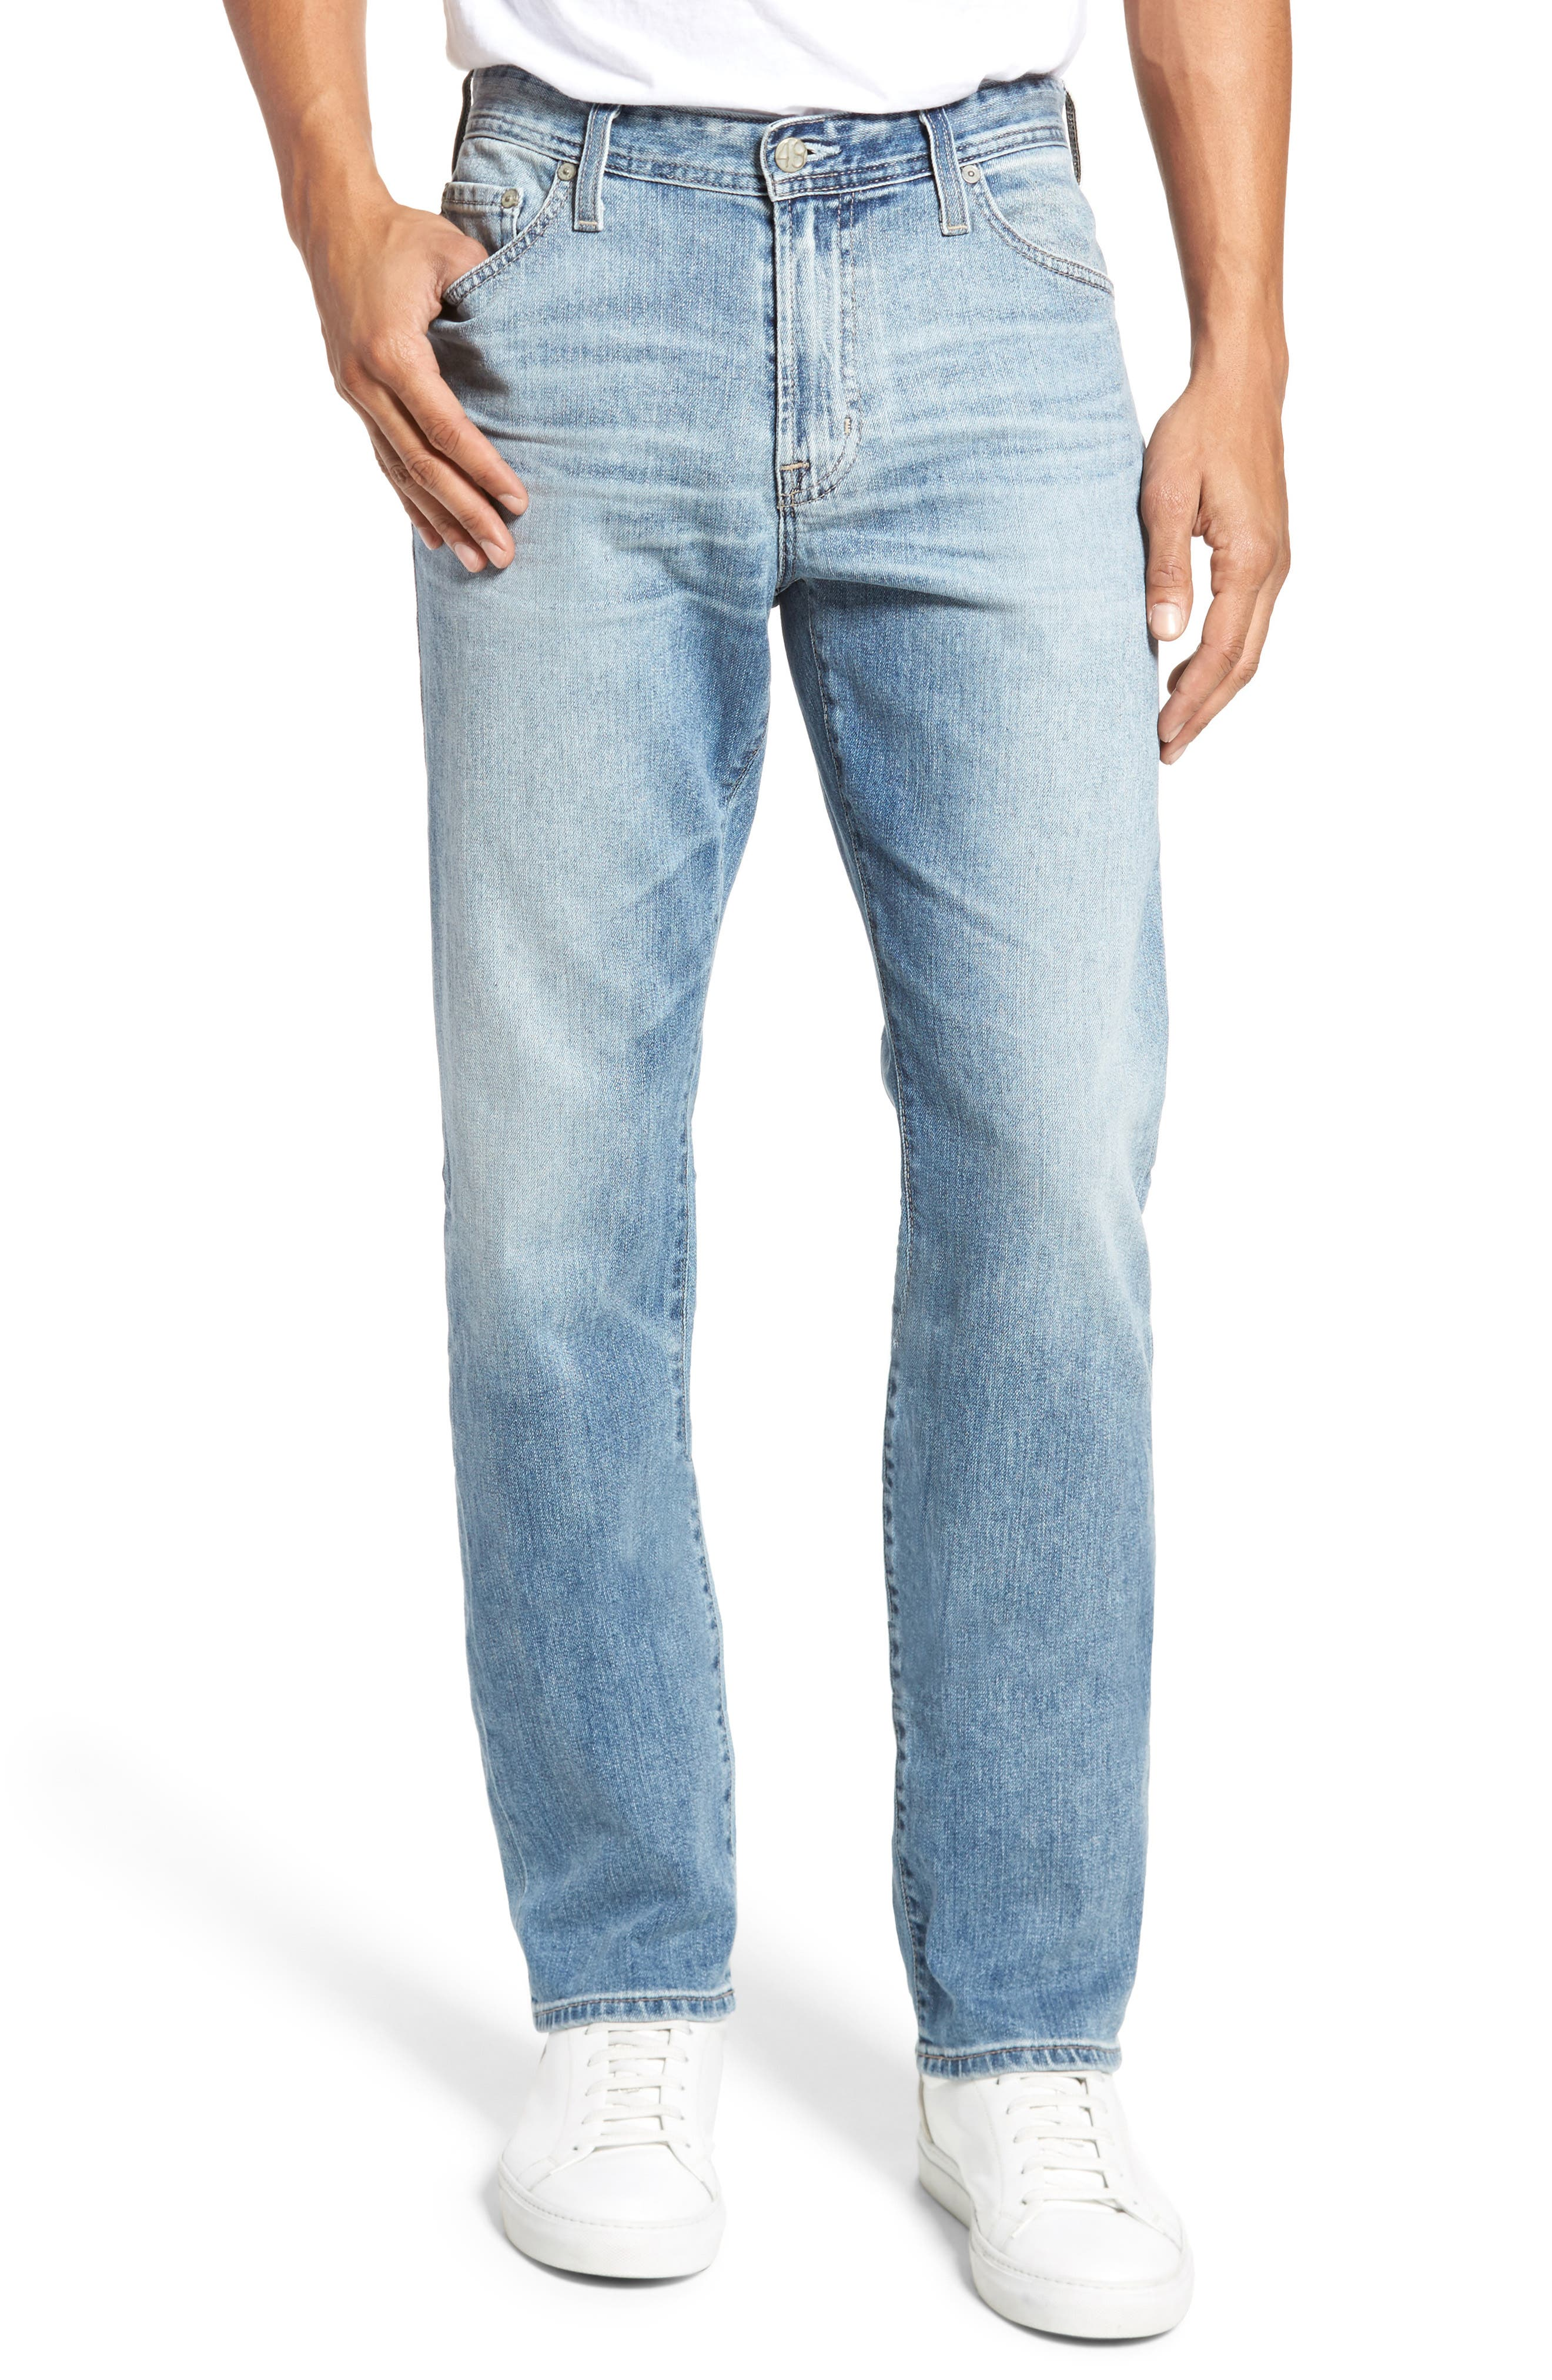 Everett Slim Straight Fit Jeans,                             Main thumbnail 1, color,                             452